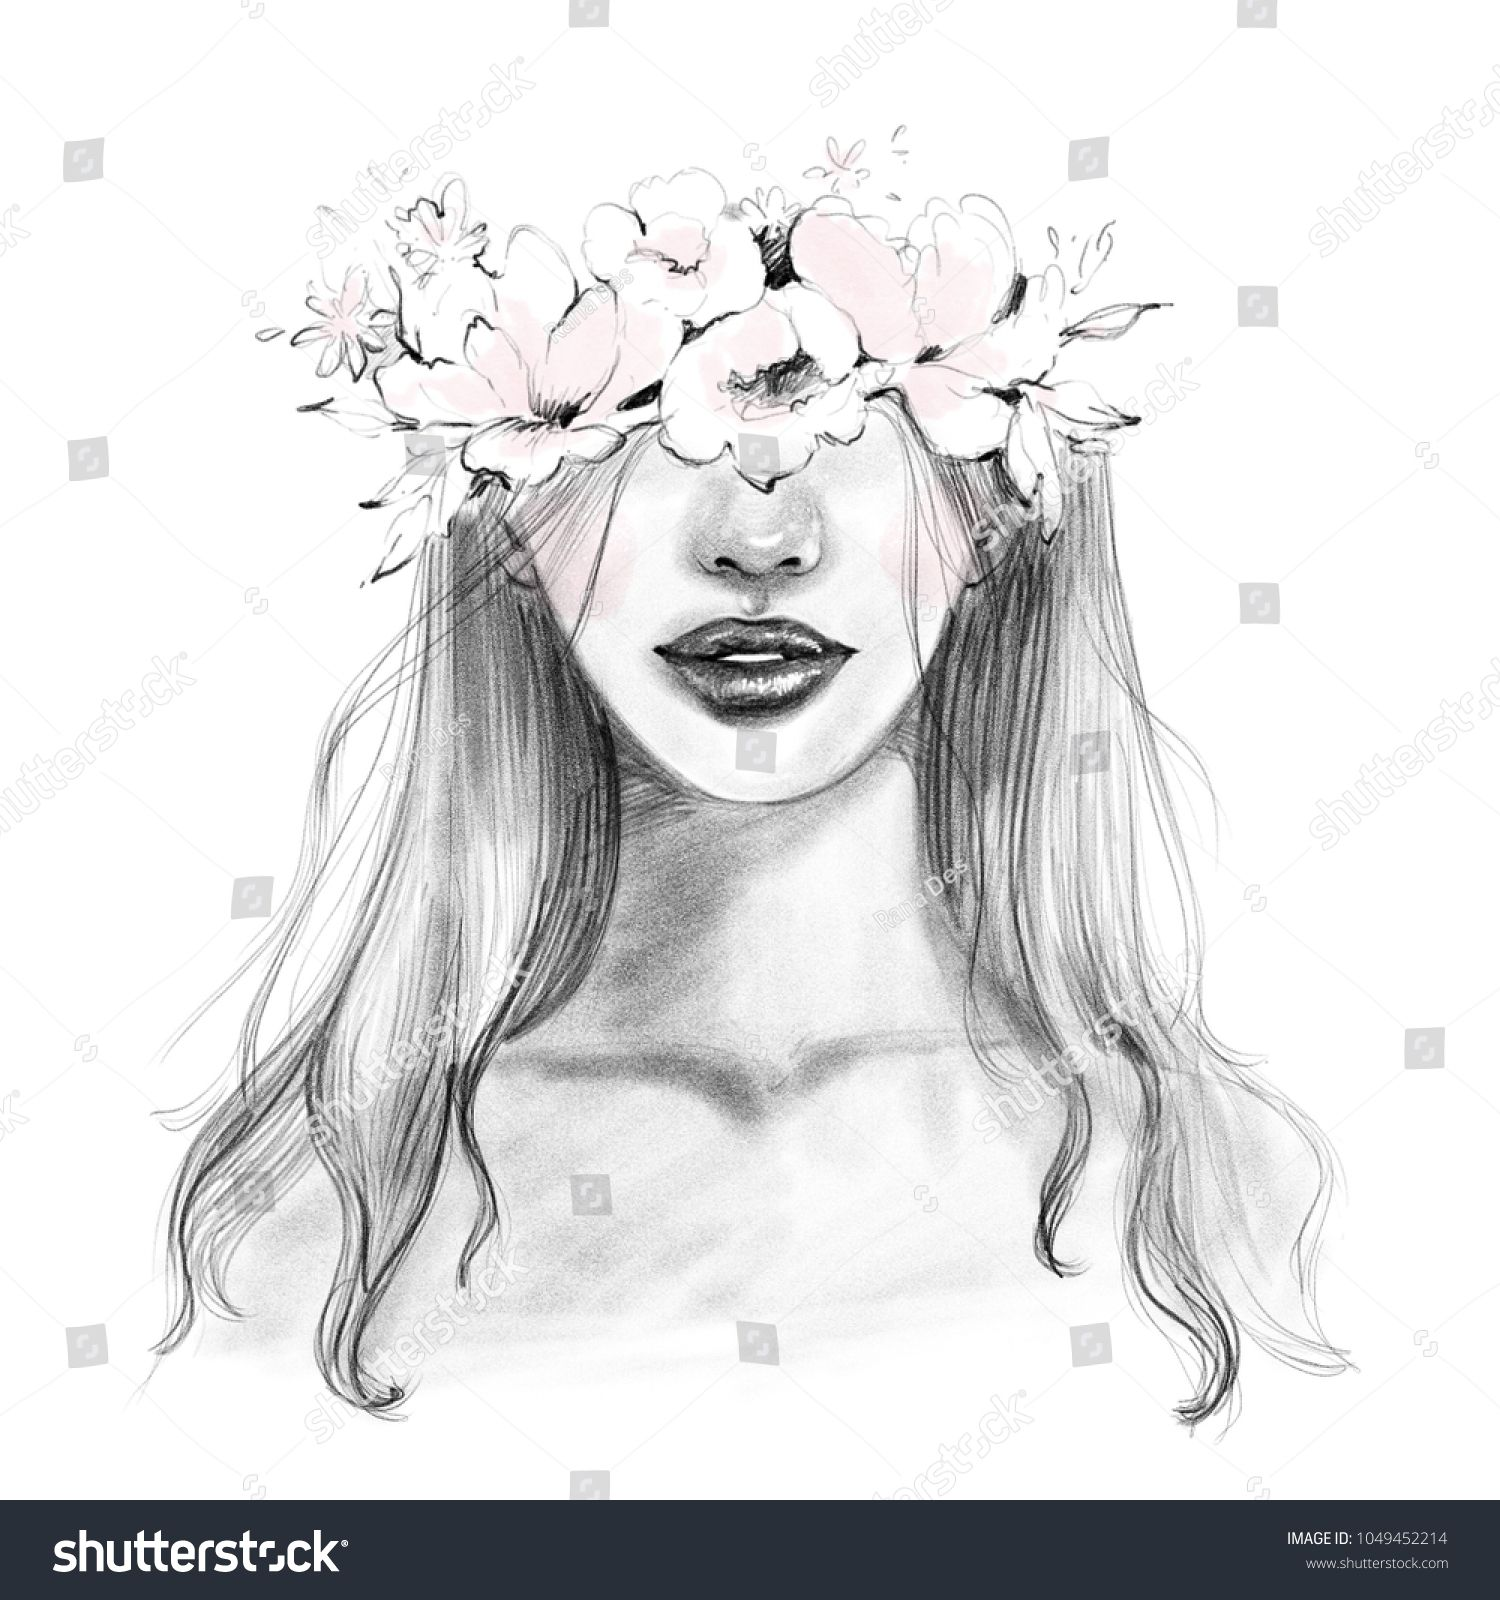 Abstract beautiful woman face portrait with flower wreath in